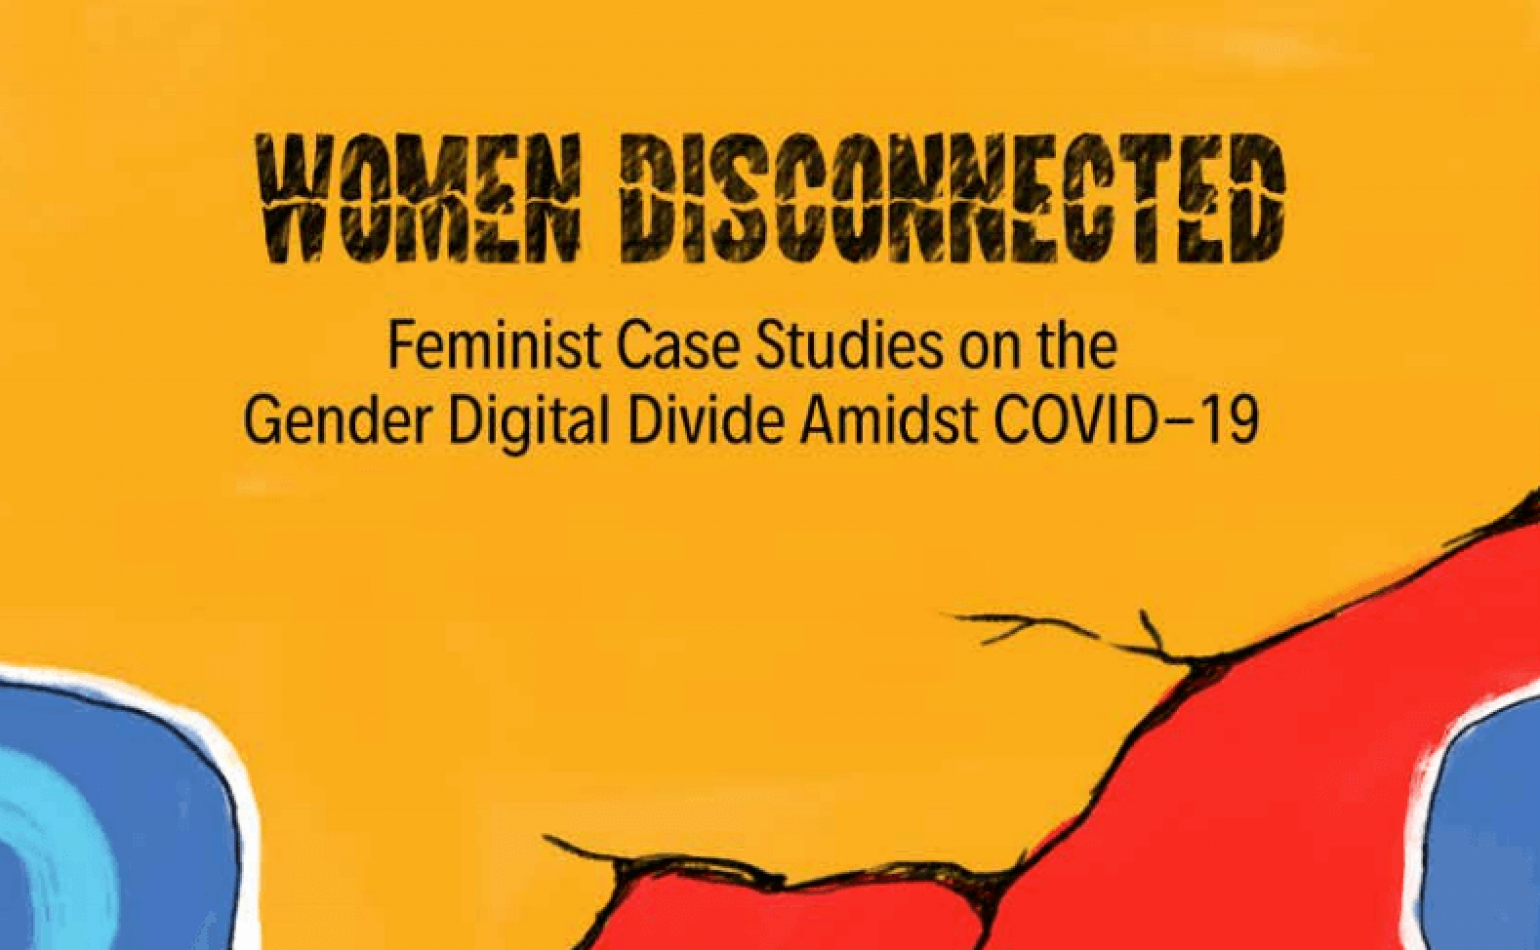 6 in 10 women face restrictions when accessing the internet, new study finds